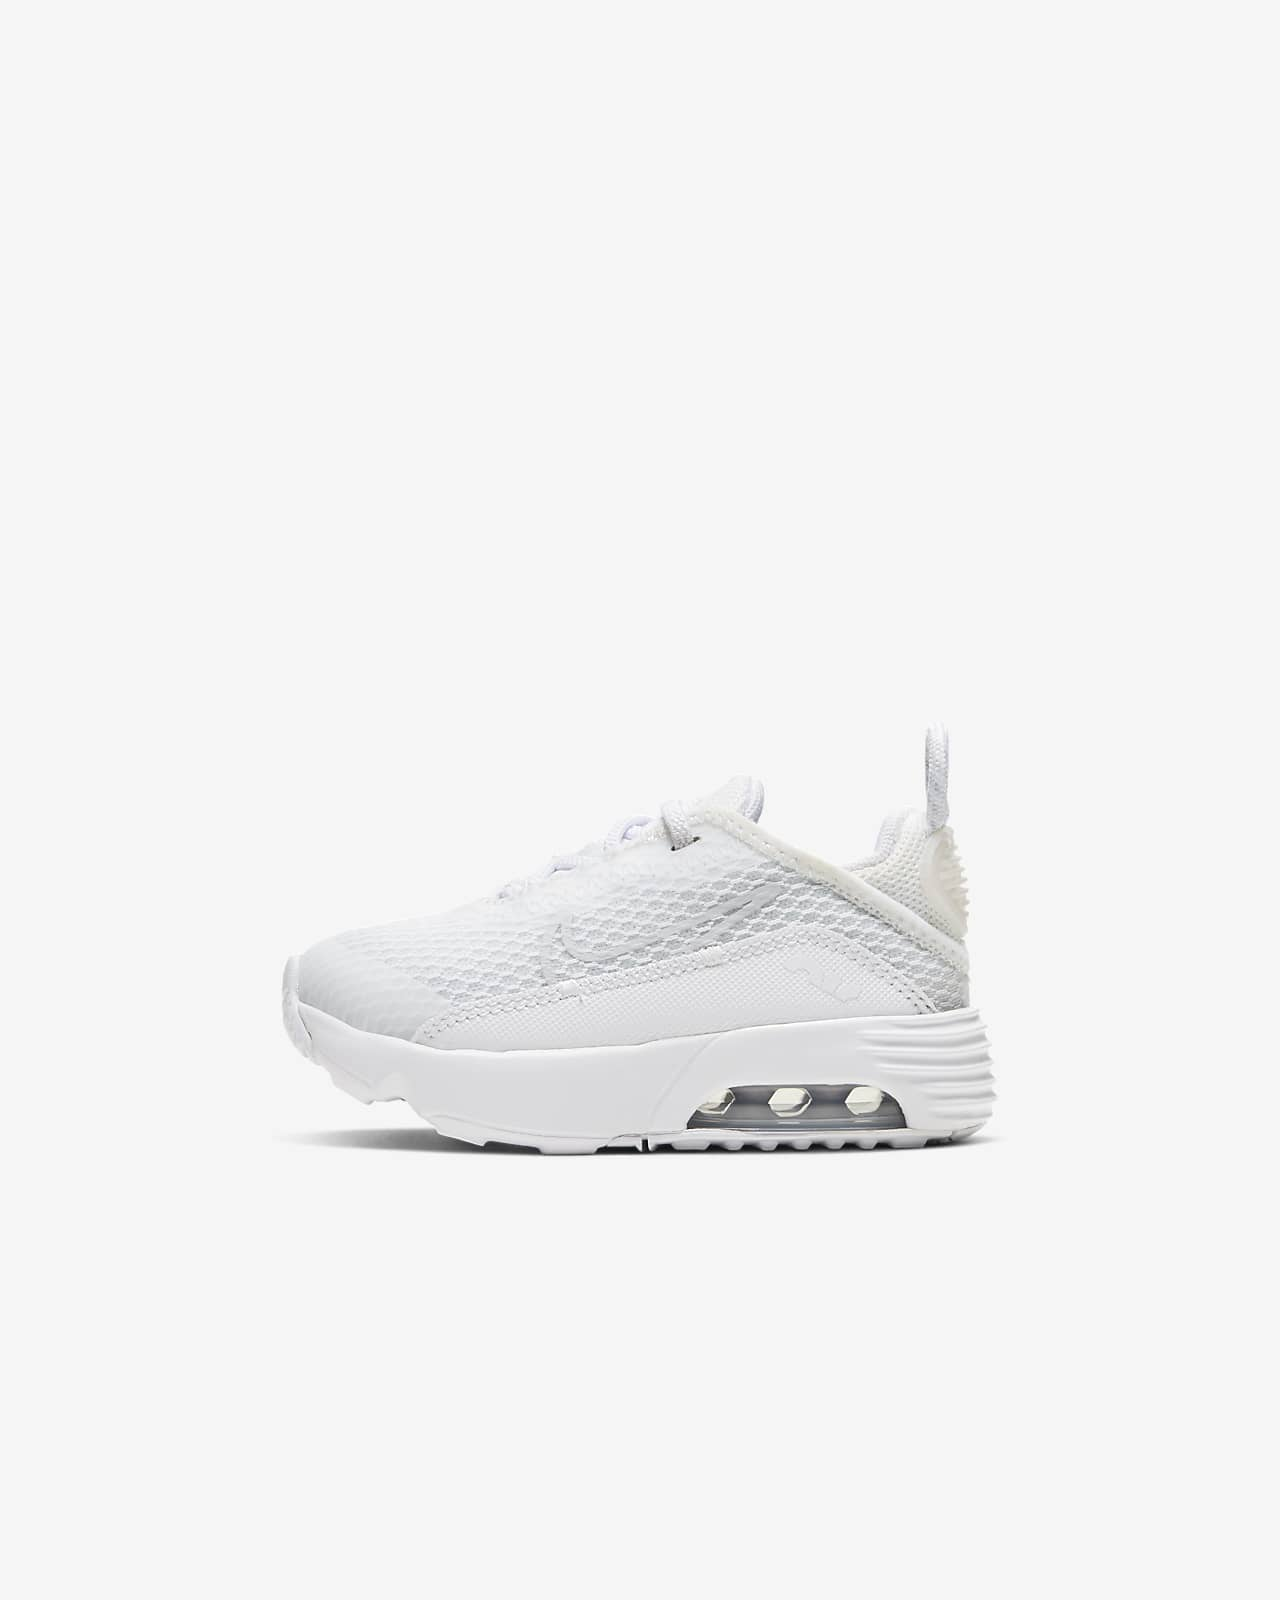 Nike Air Max 2090 Sabatilles - Nadó i infant